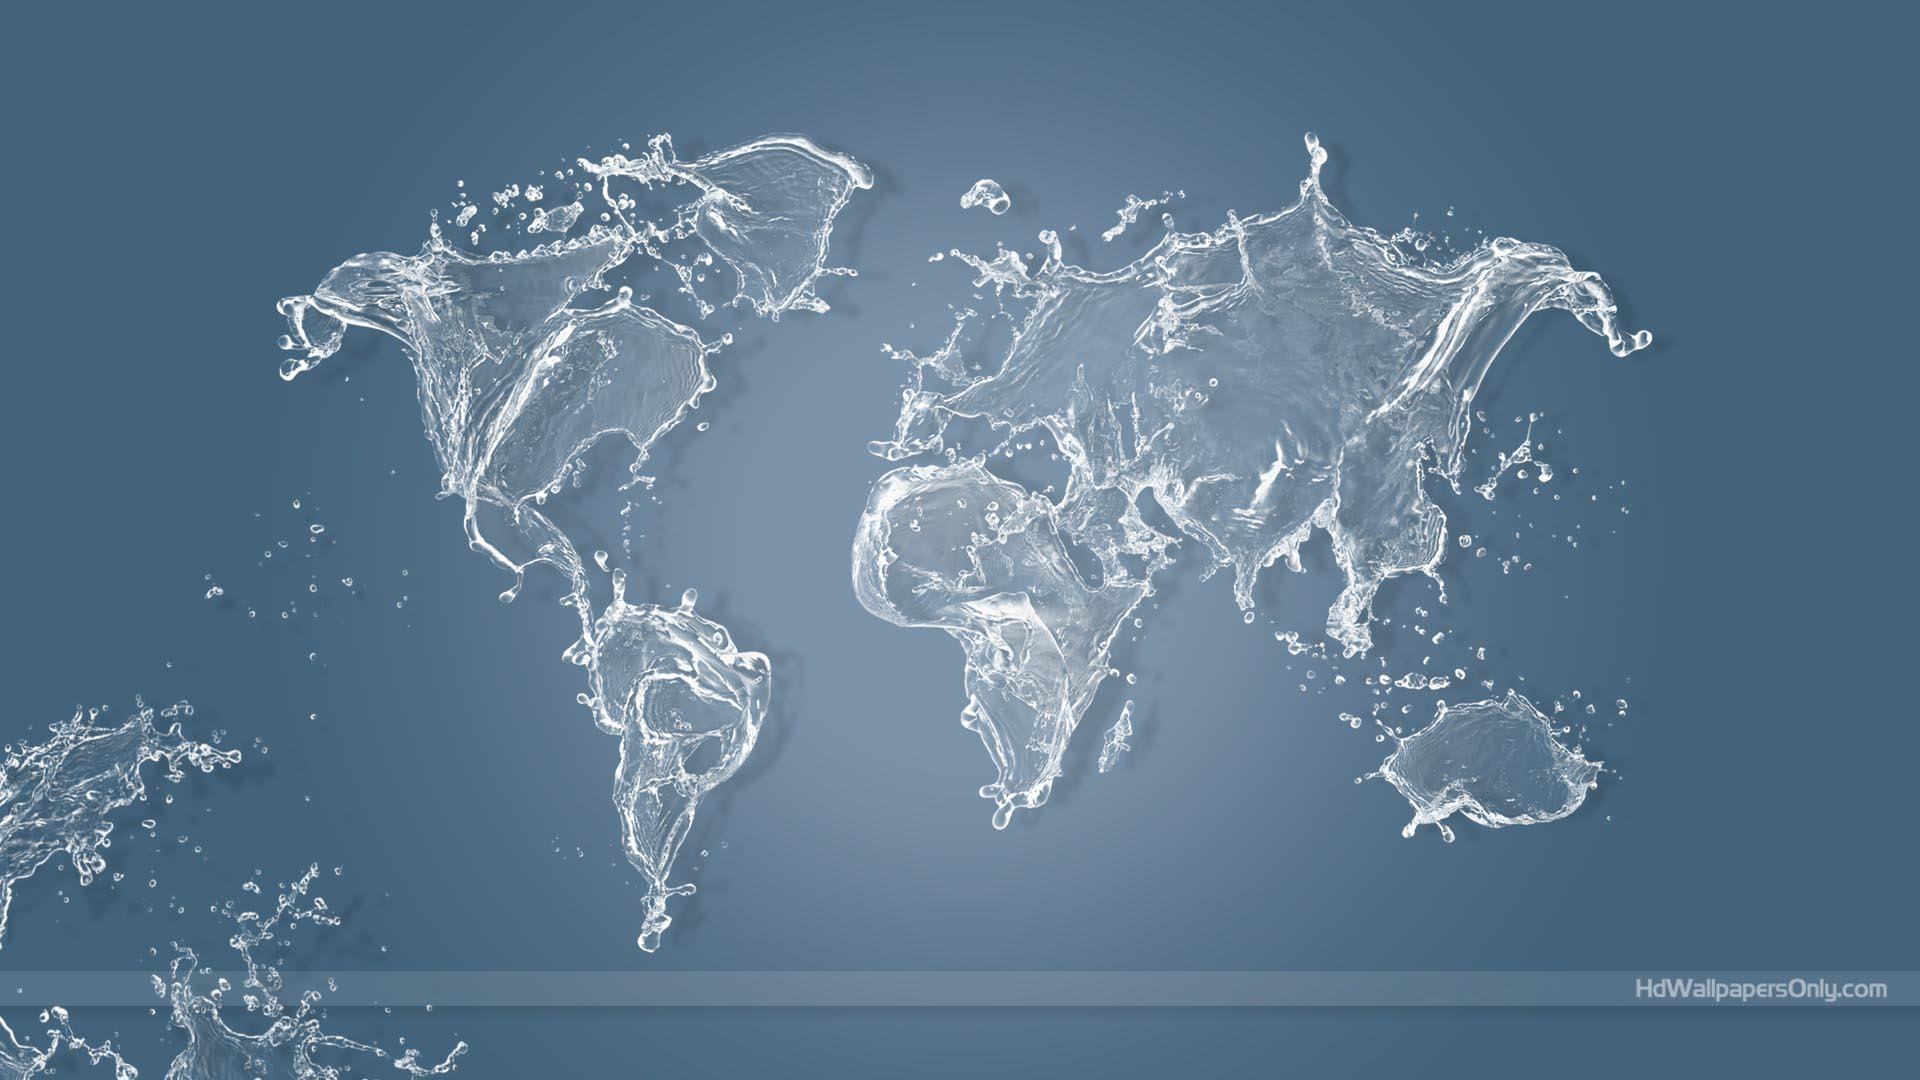 World map wallpaper desktop wallpapersafari World map wallpaper